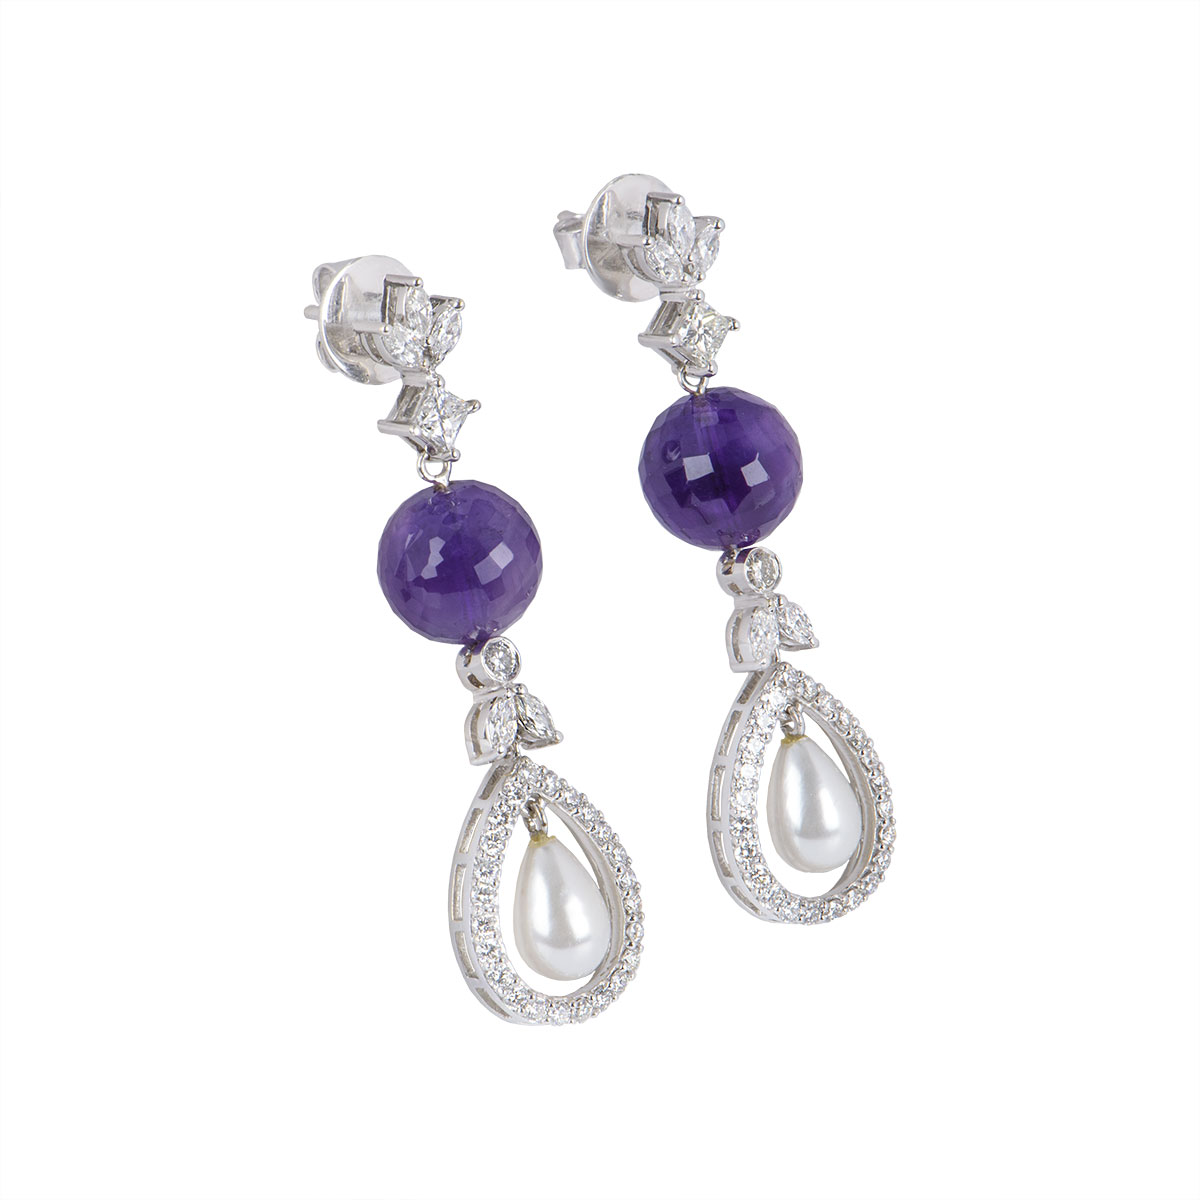 White Gold Diamond And Multi-Stone Earrings